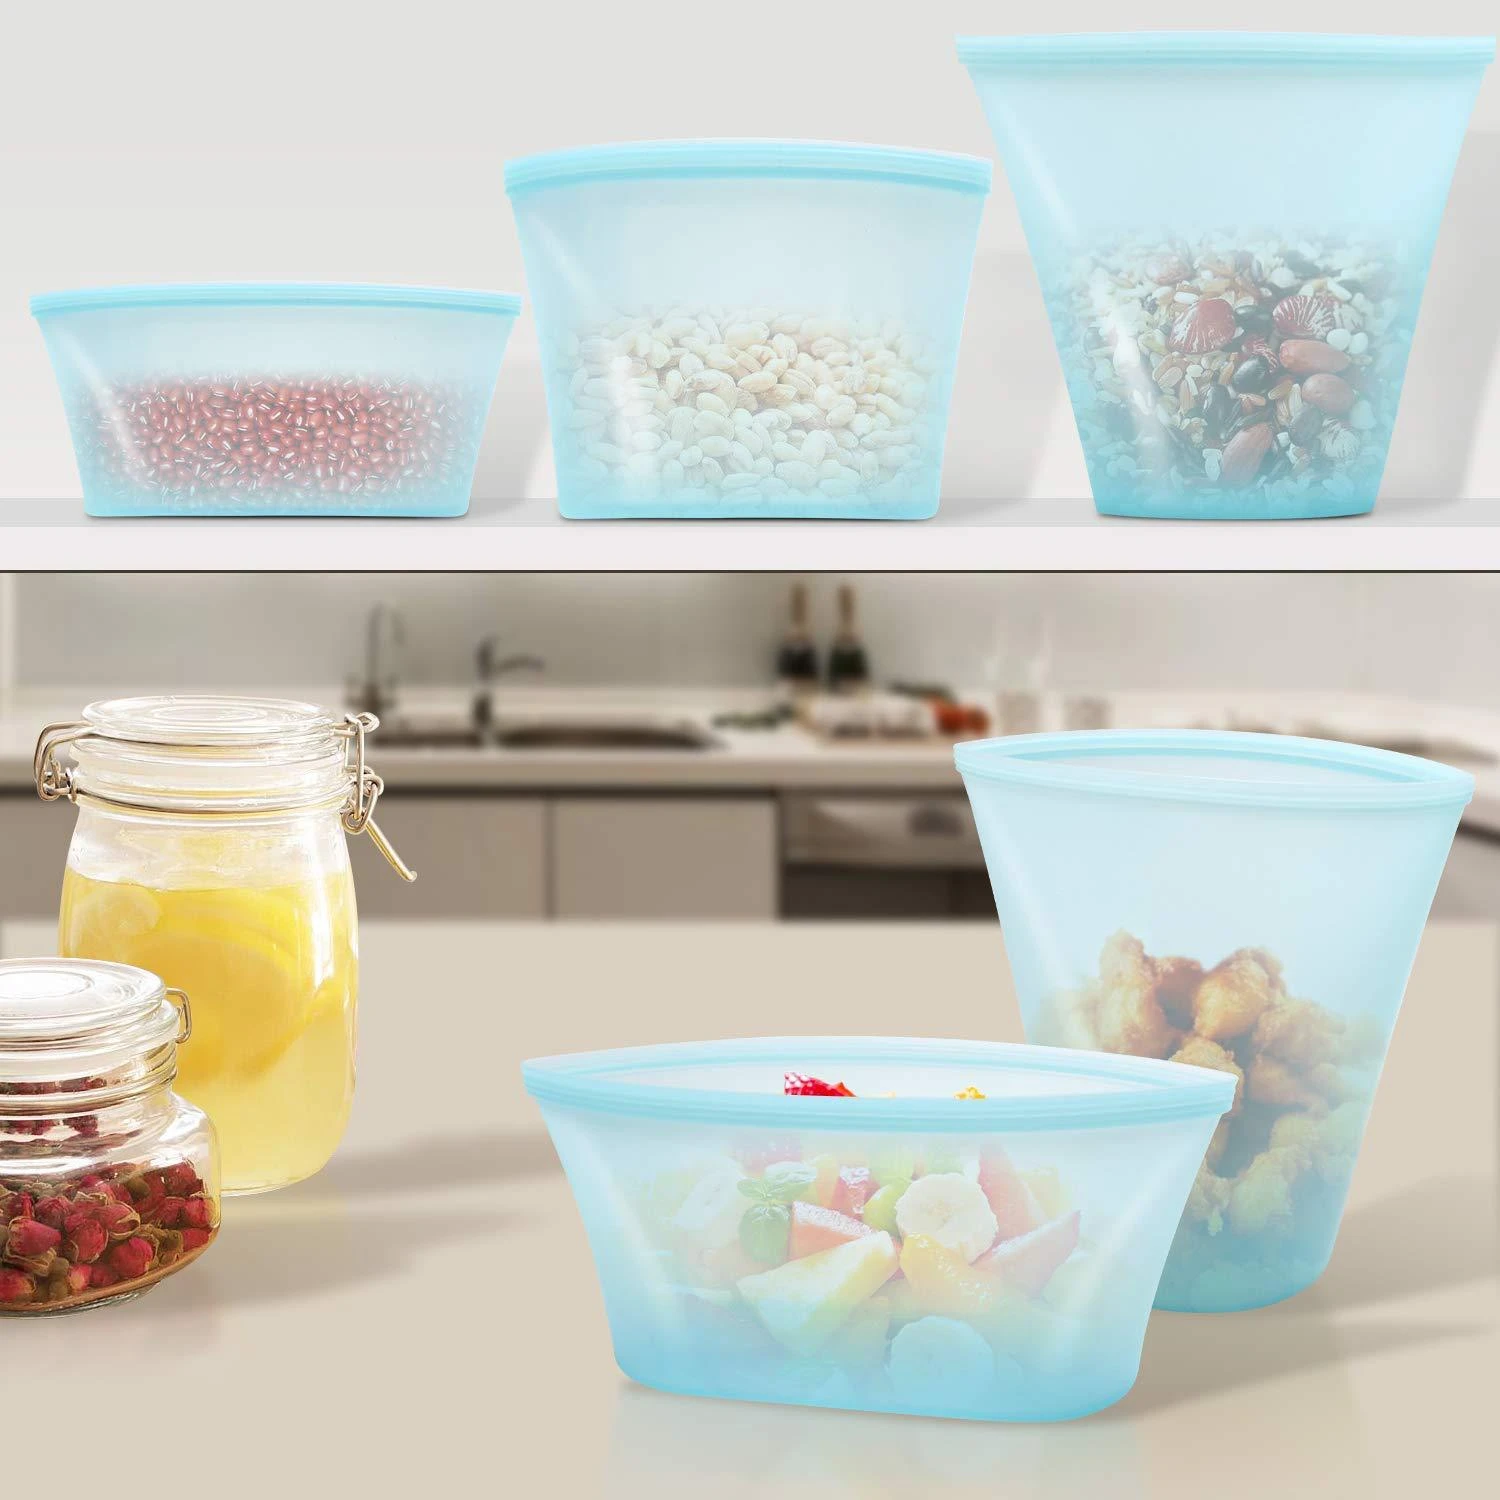 FOODZIP! ™ 6 + 2 ECO REUSABLE CONTAINERS